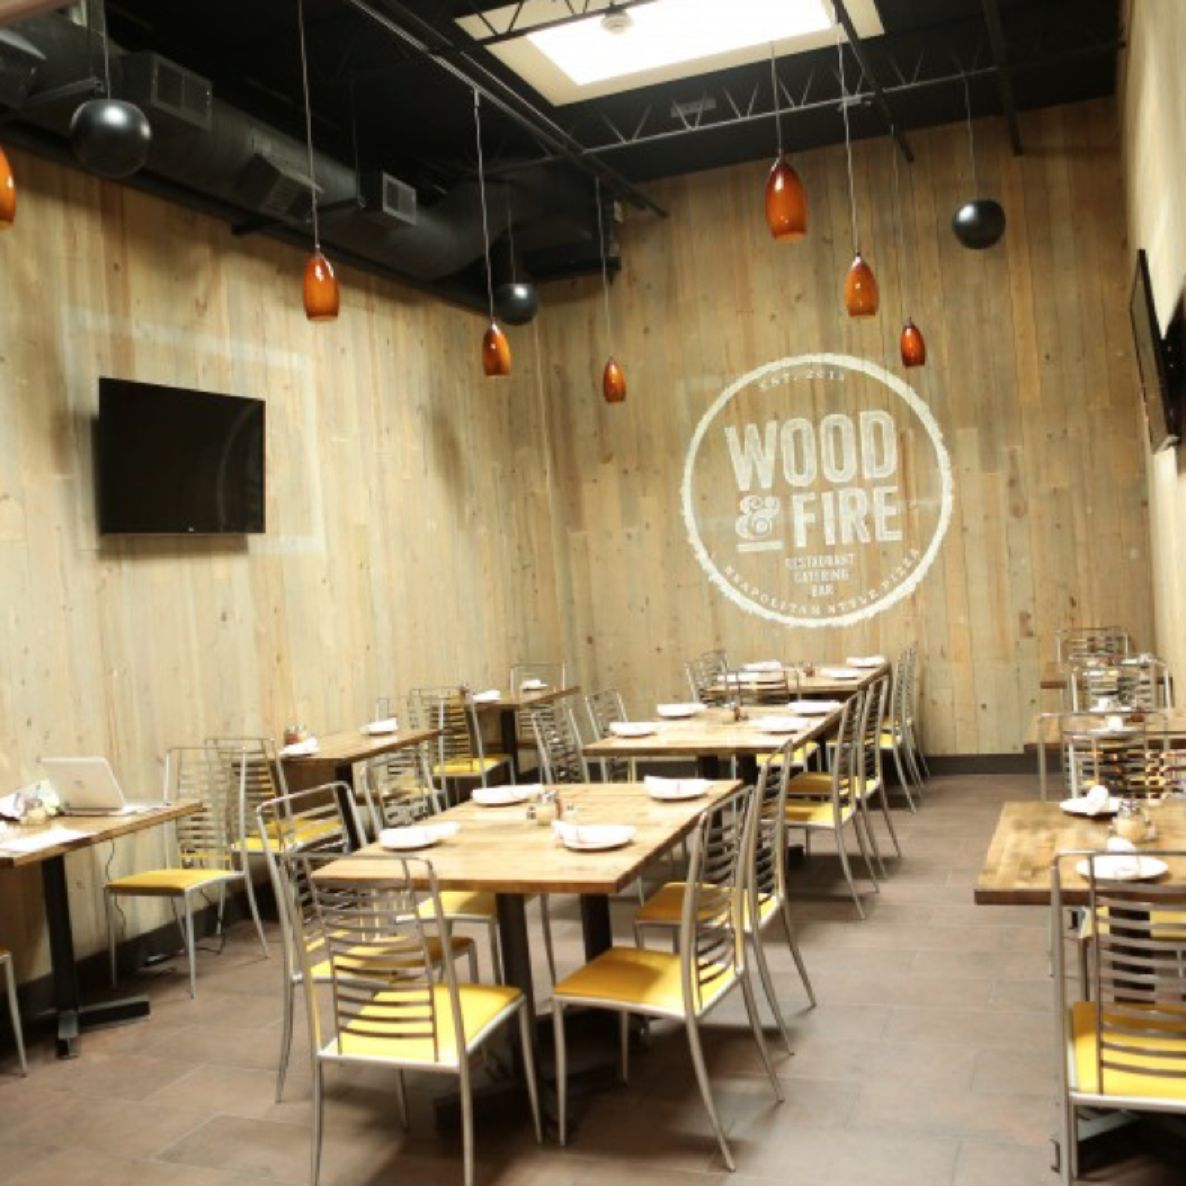 Wood & Fire Restaurant - Pleasantville, NY | OpenTable